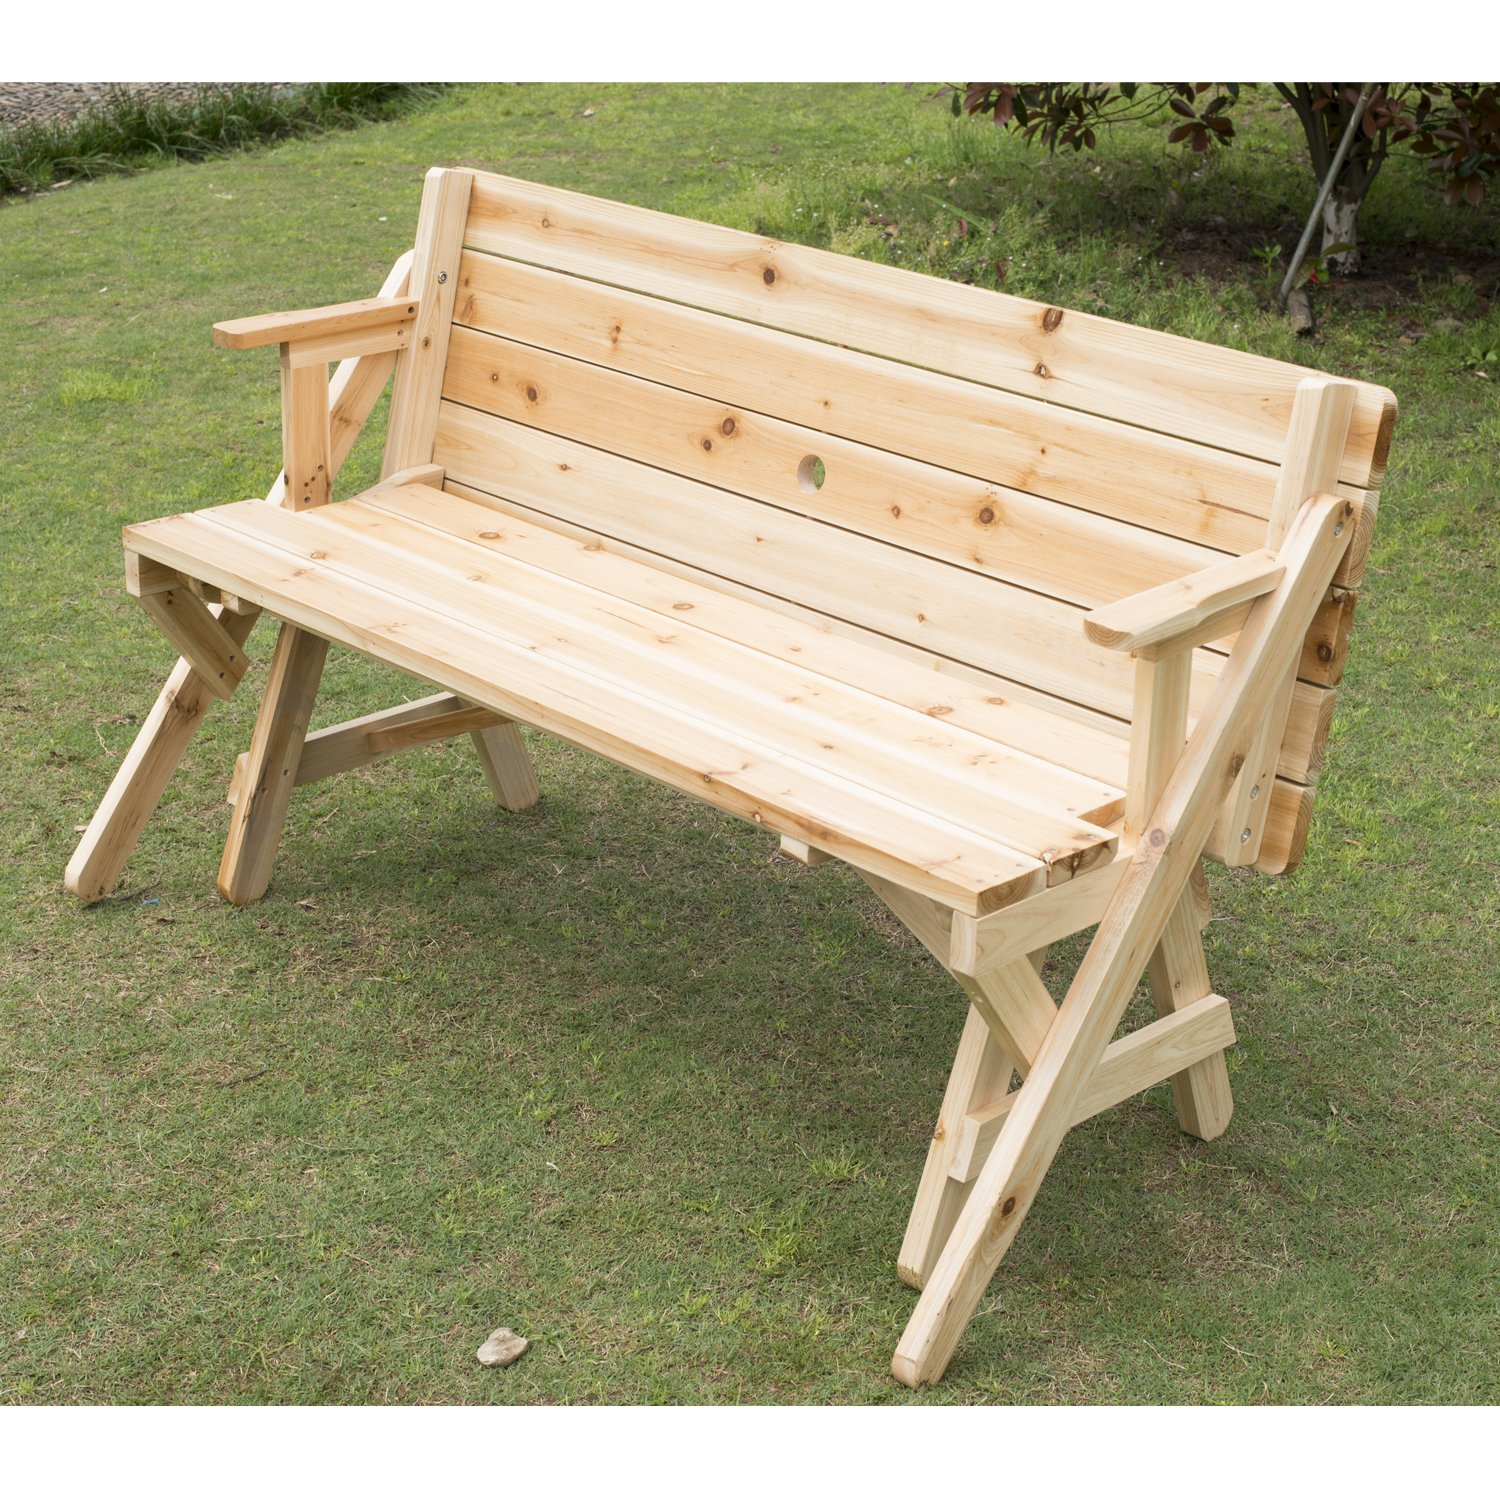 Lovely Garden Bench Table Part - 10: Amazon.com : Outsunny 2 In 1 Convertible Picnic Table U0026 Garden Bench :  Garden U0026 Outdoor